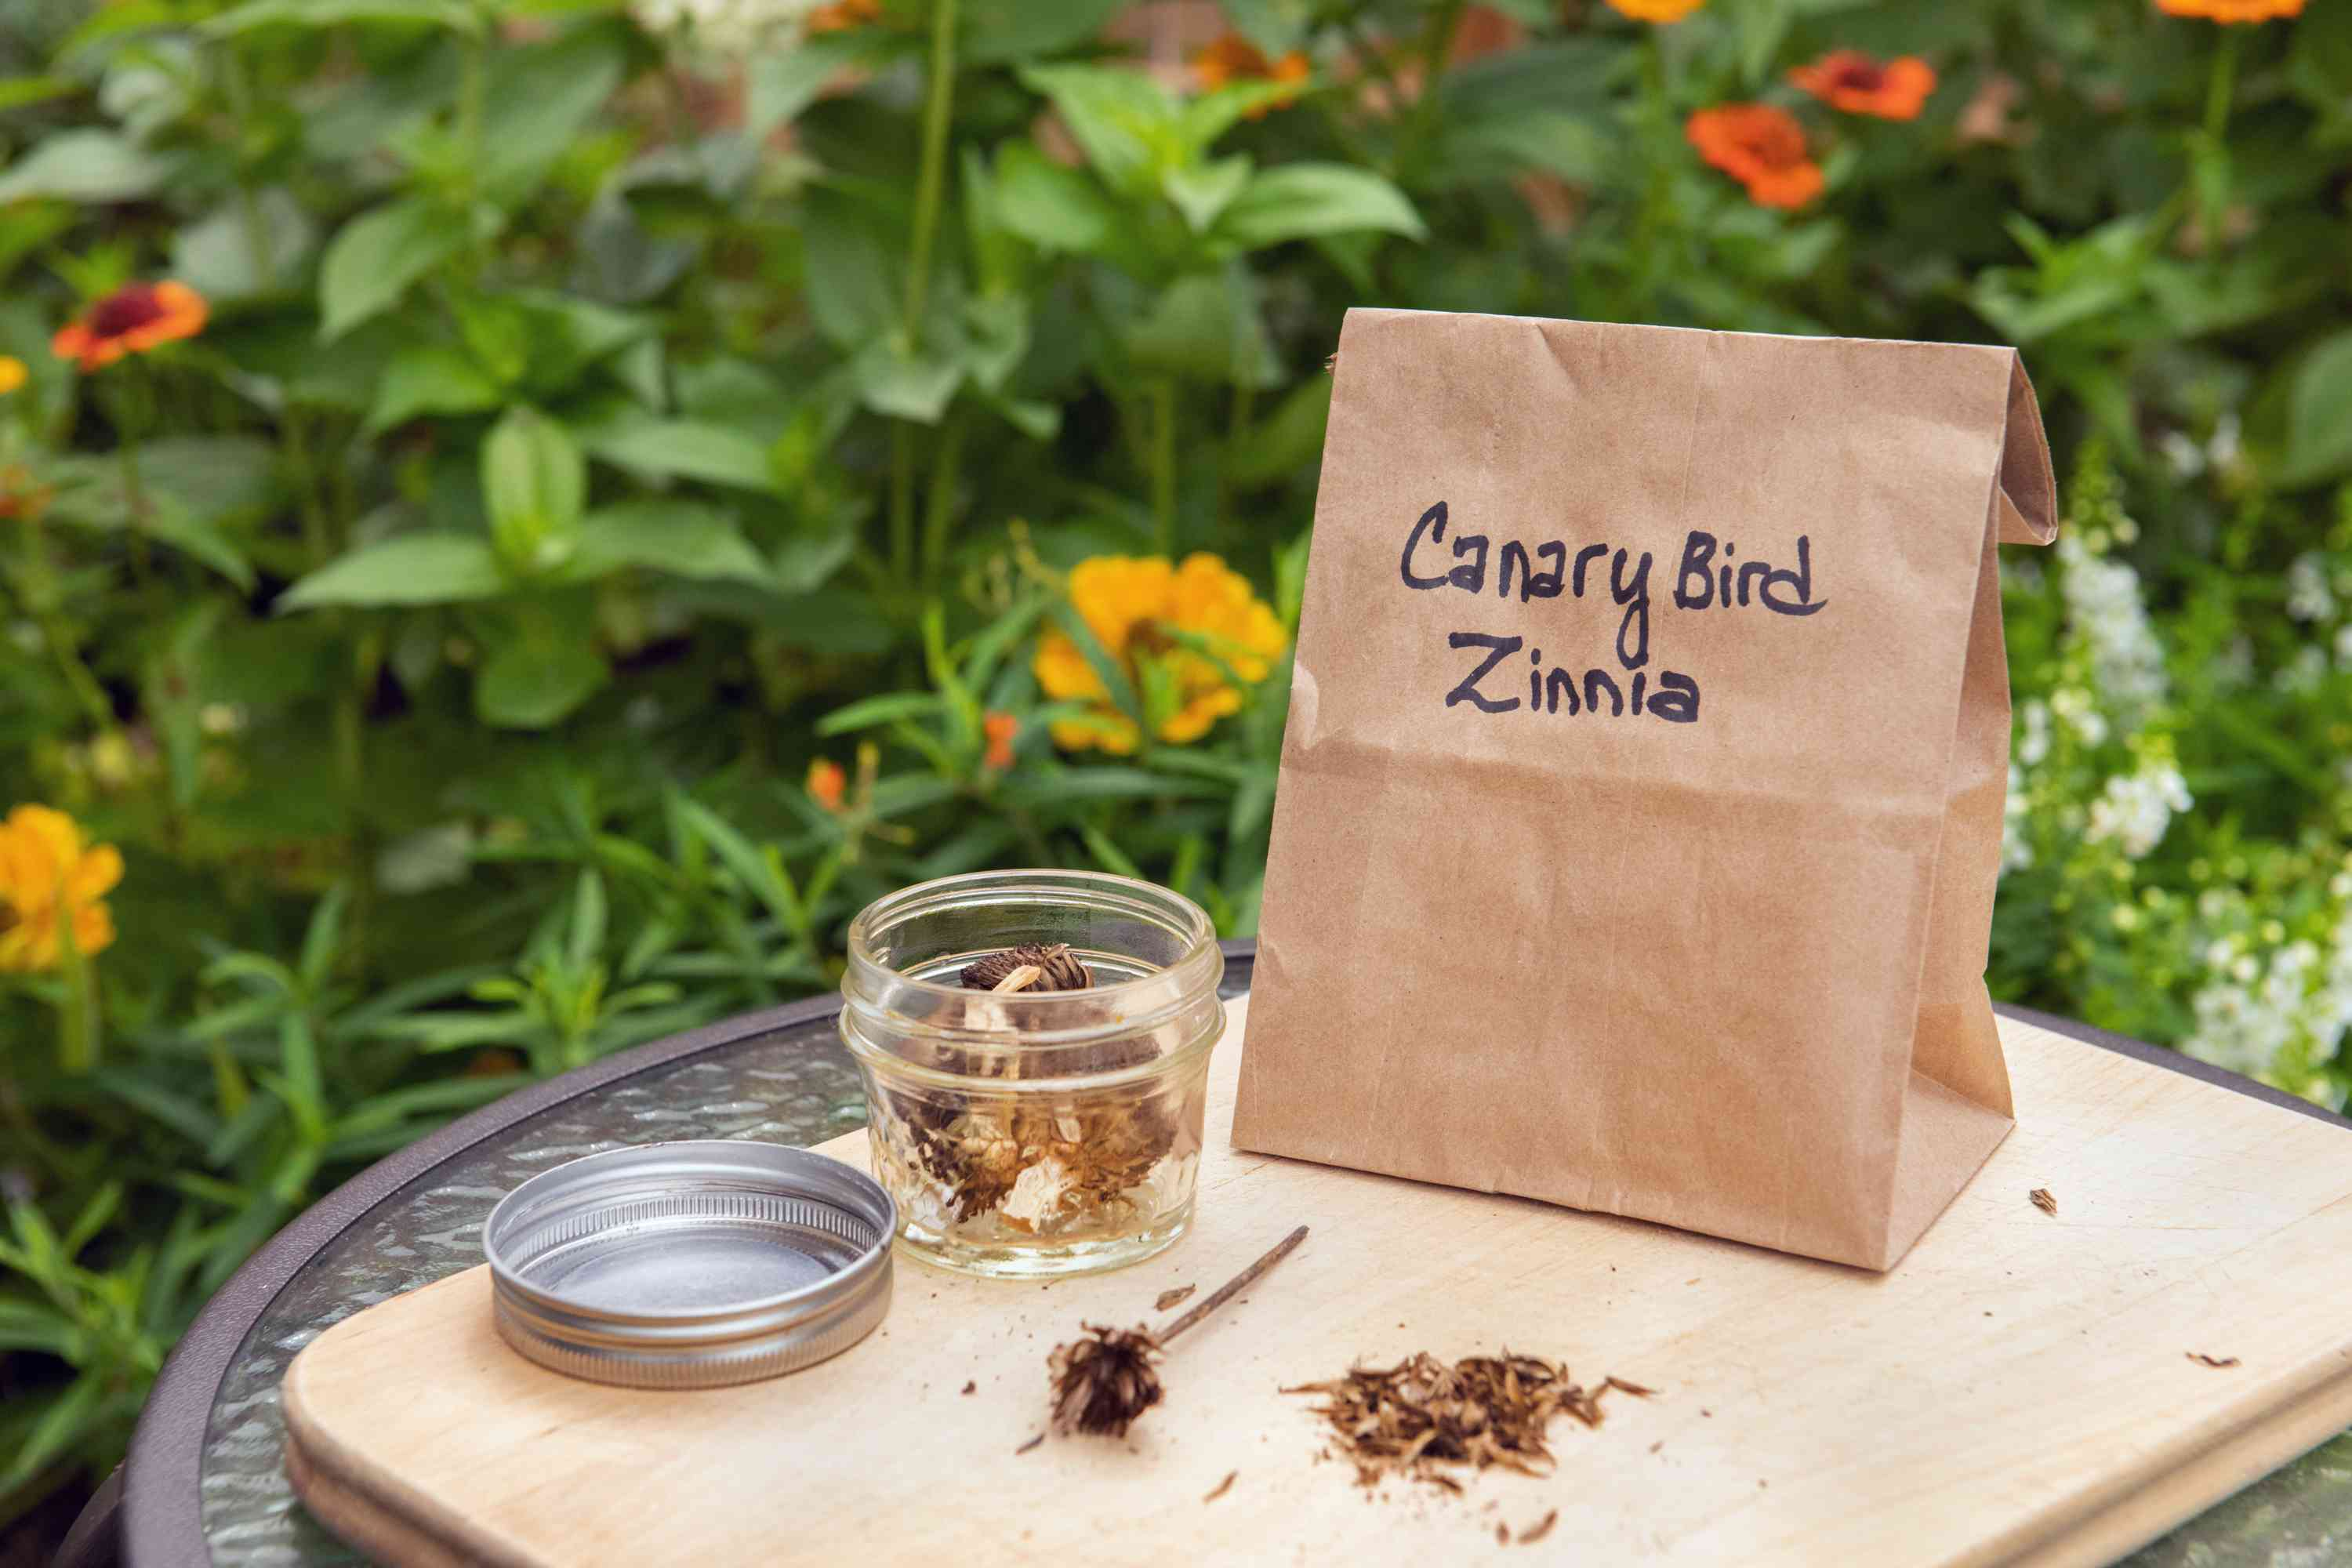 How To Harvest And Save Zinnia Seeds